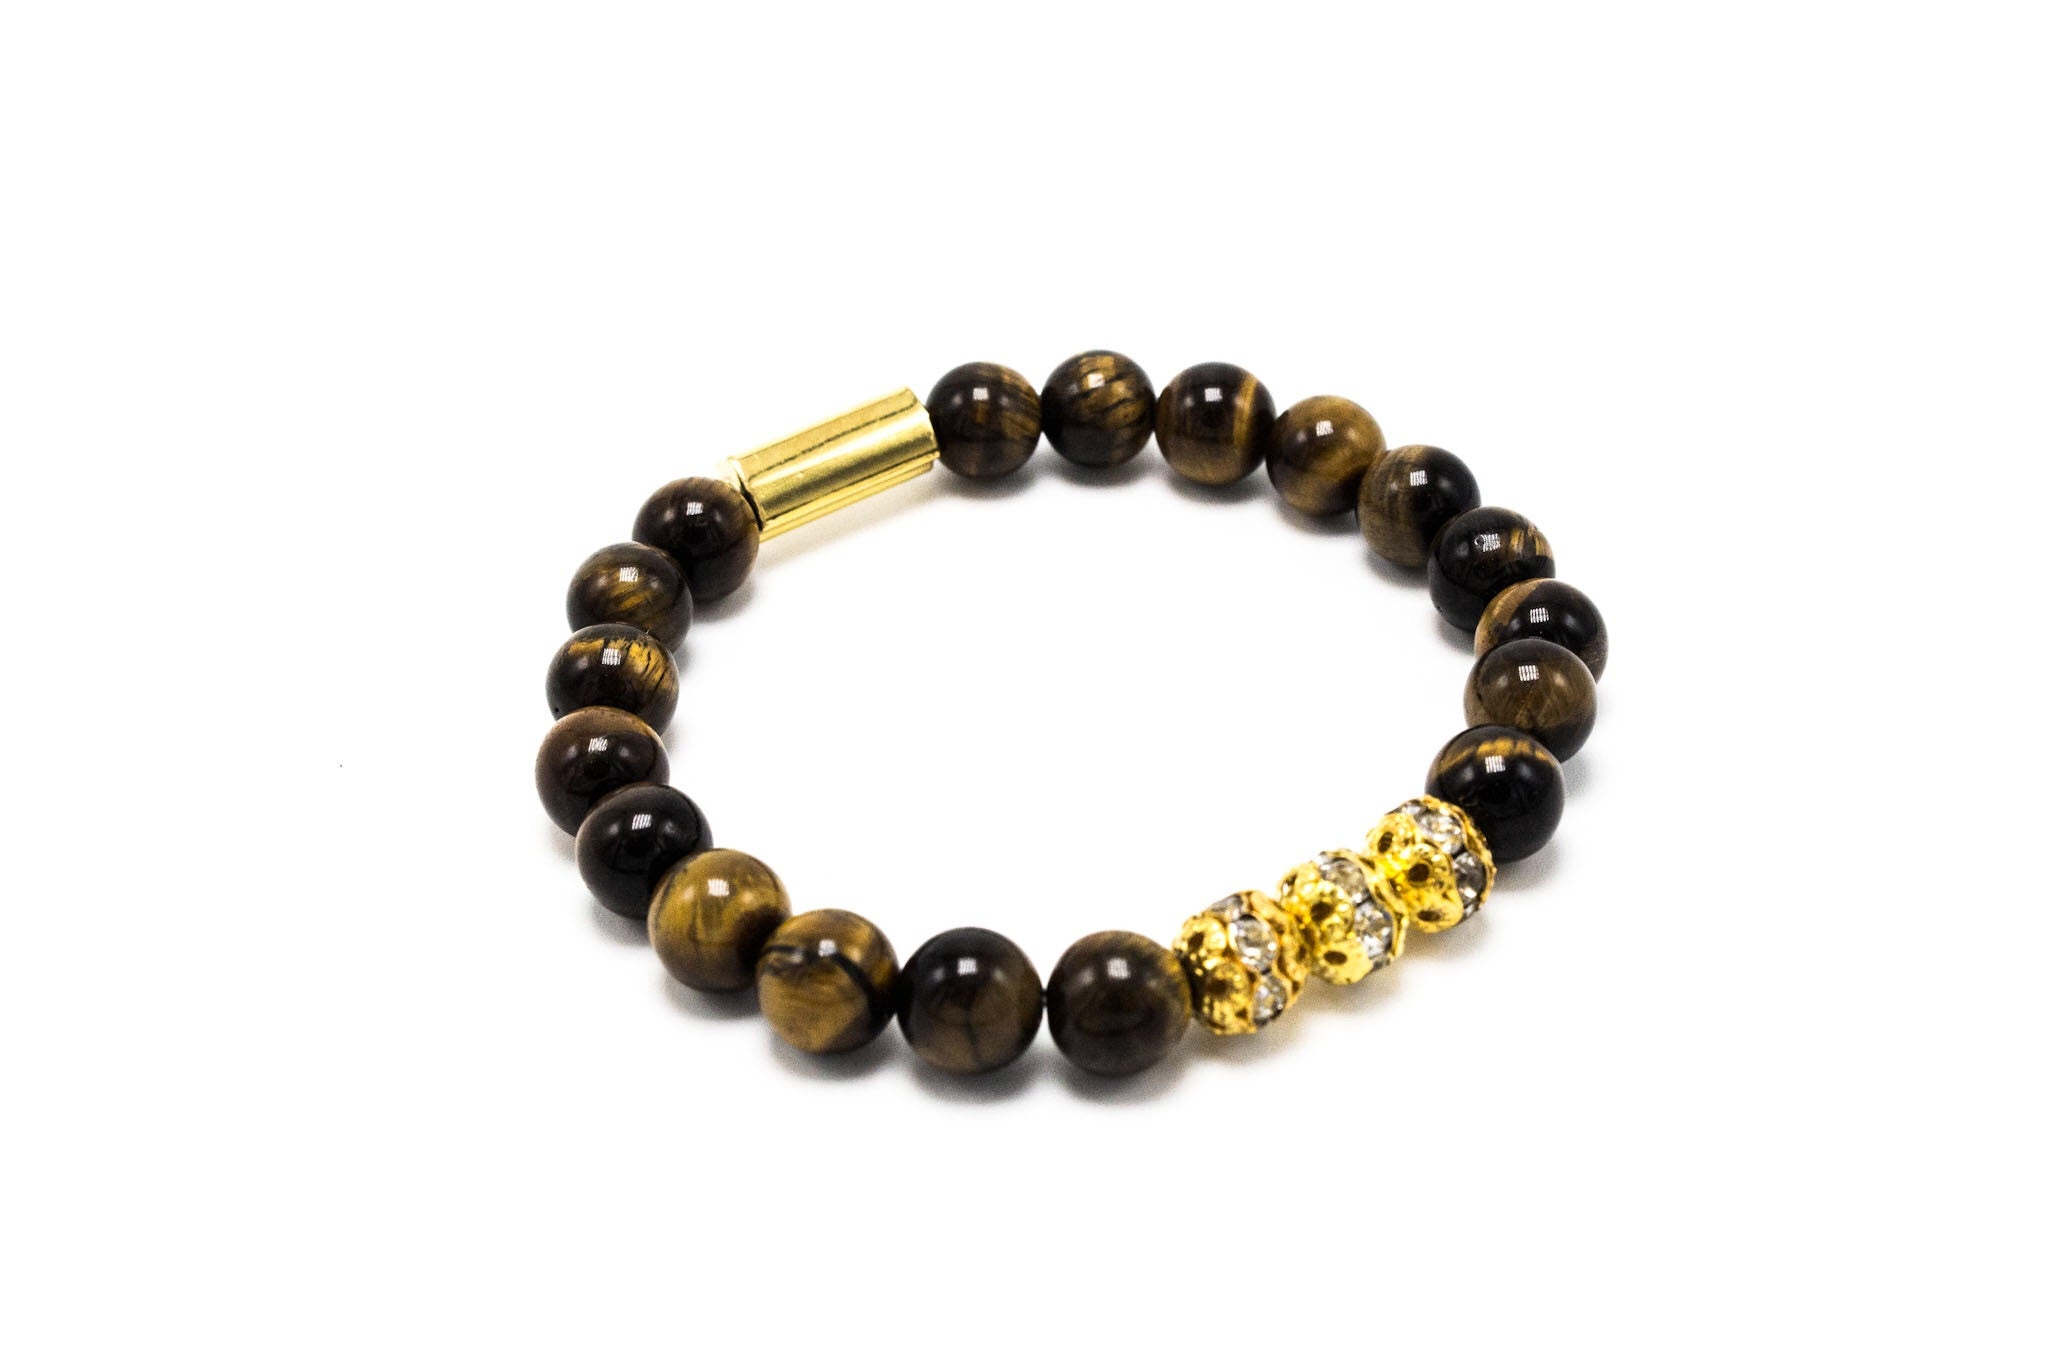 Brown Tiger Eye Lux Golden Crystal Balls